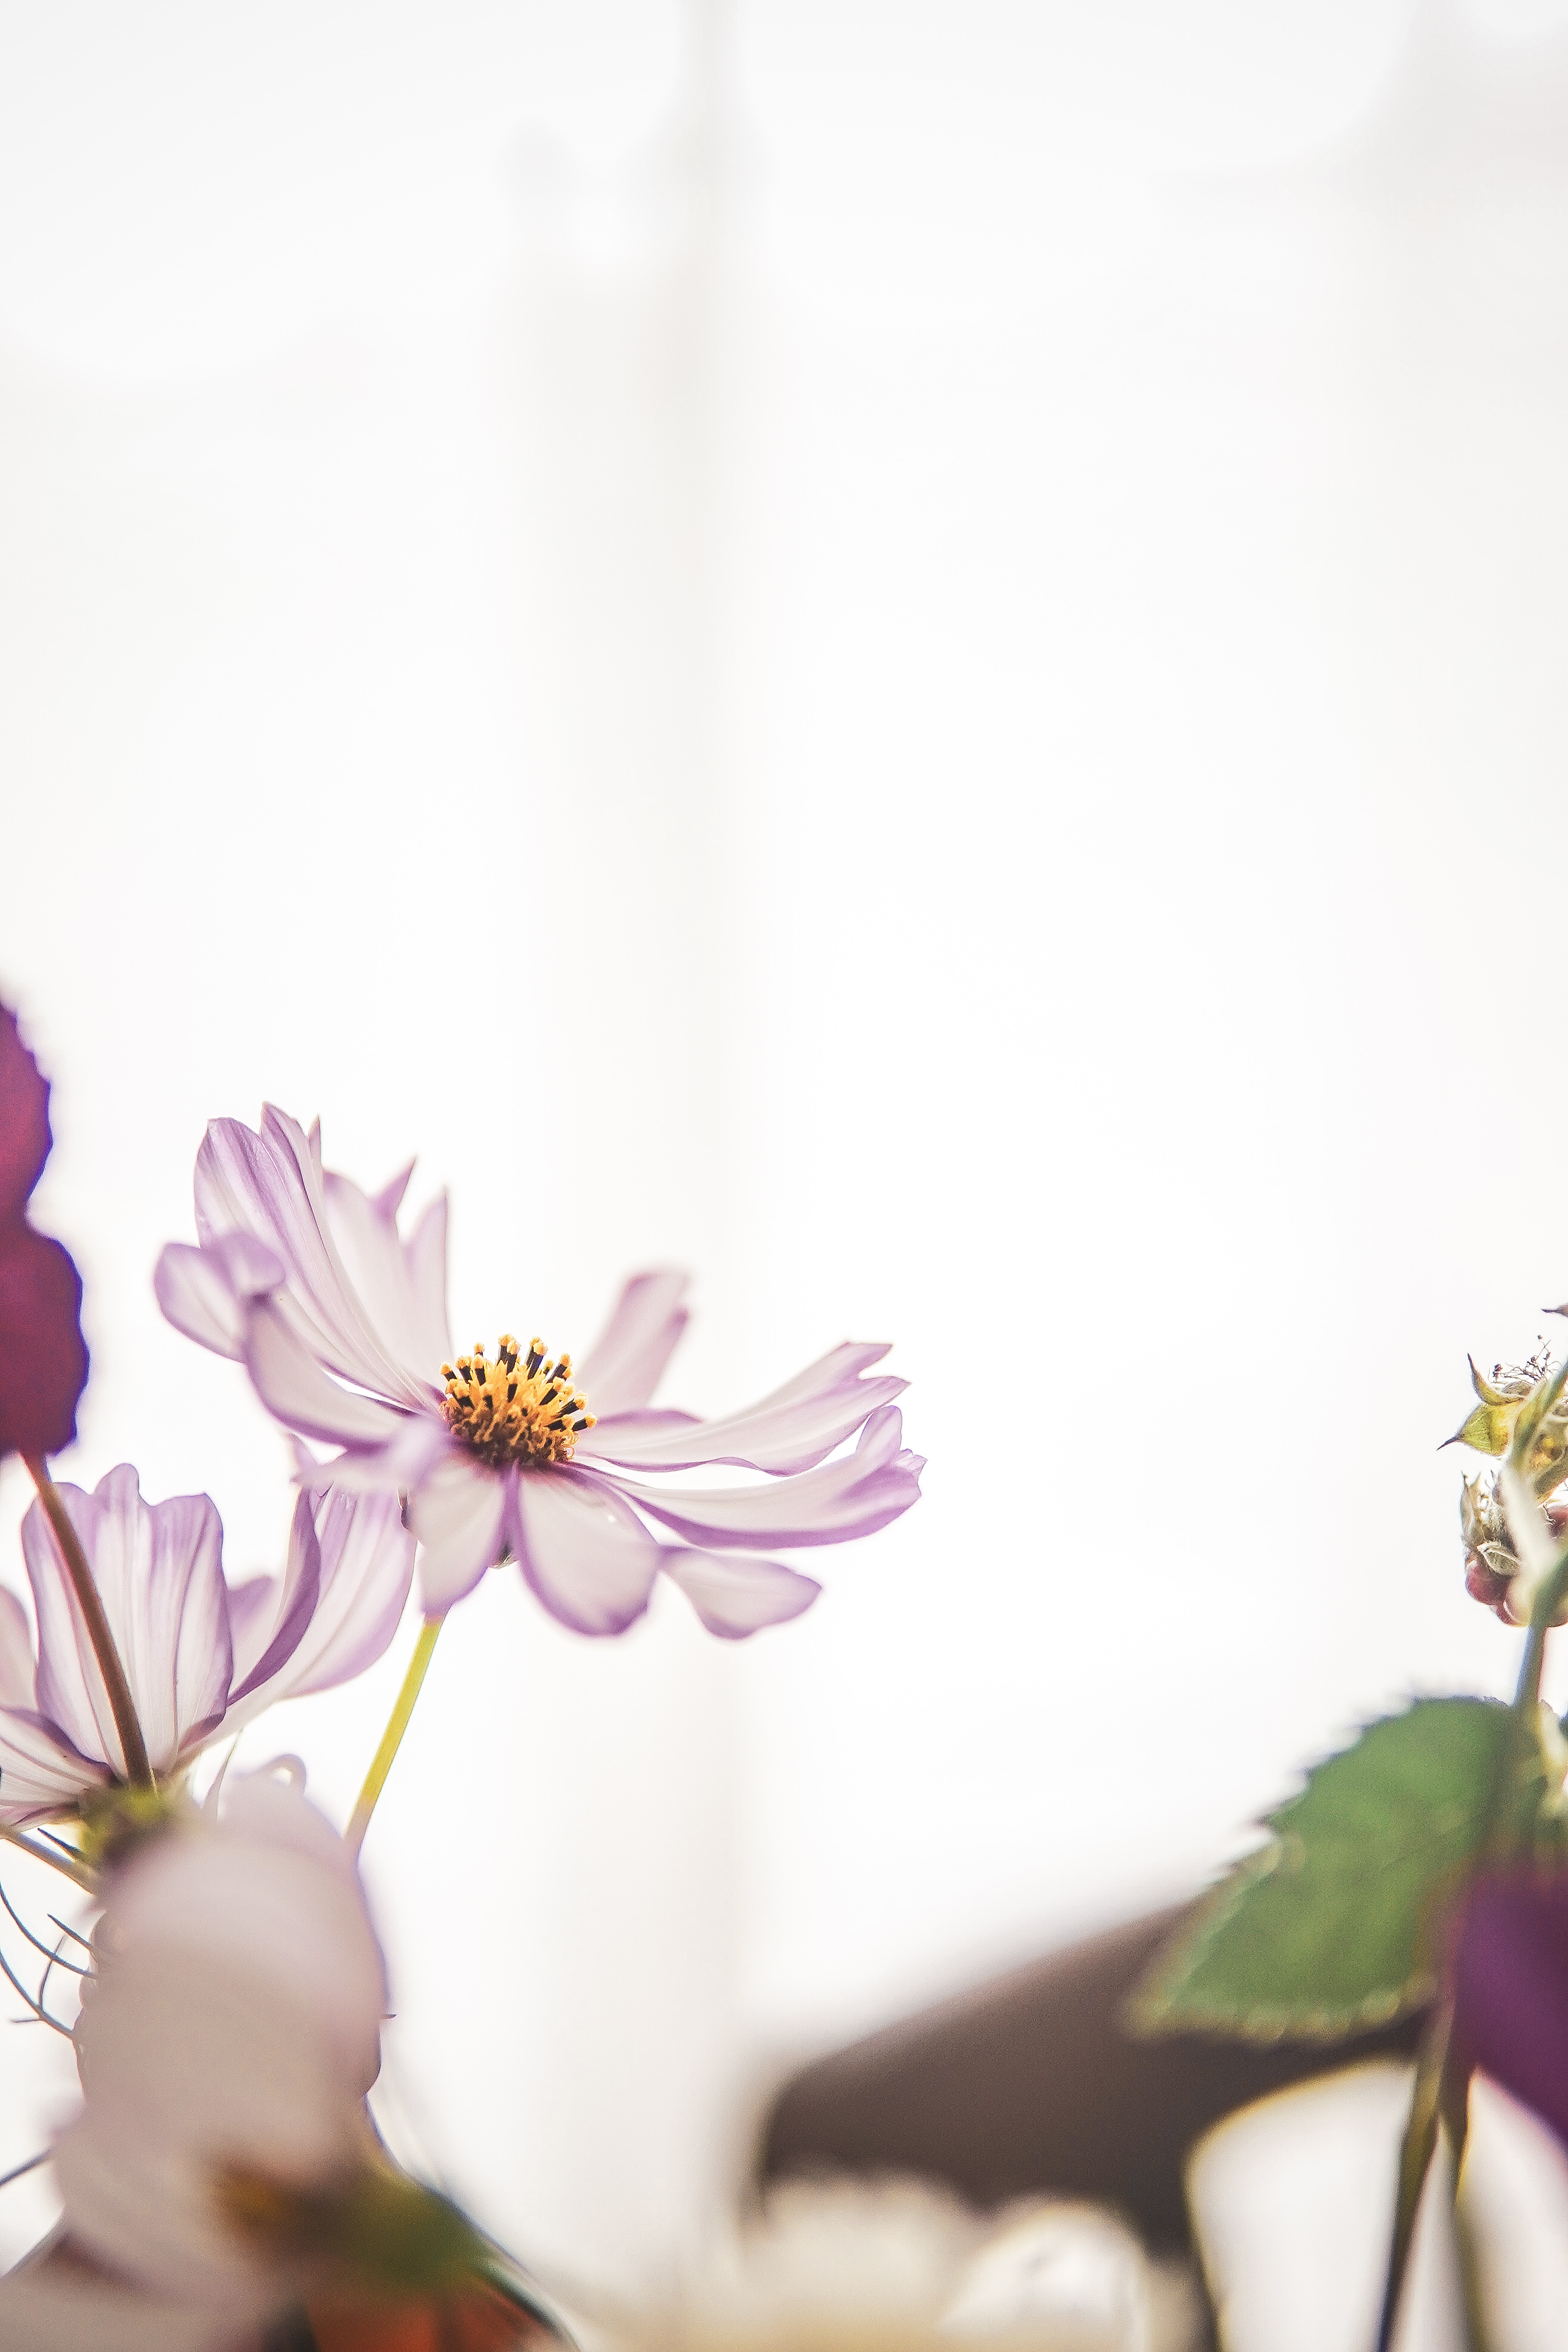 cosmos flower ohotography